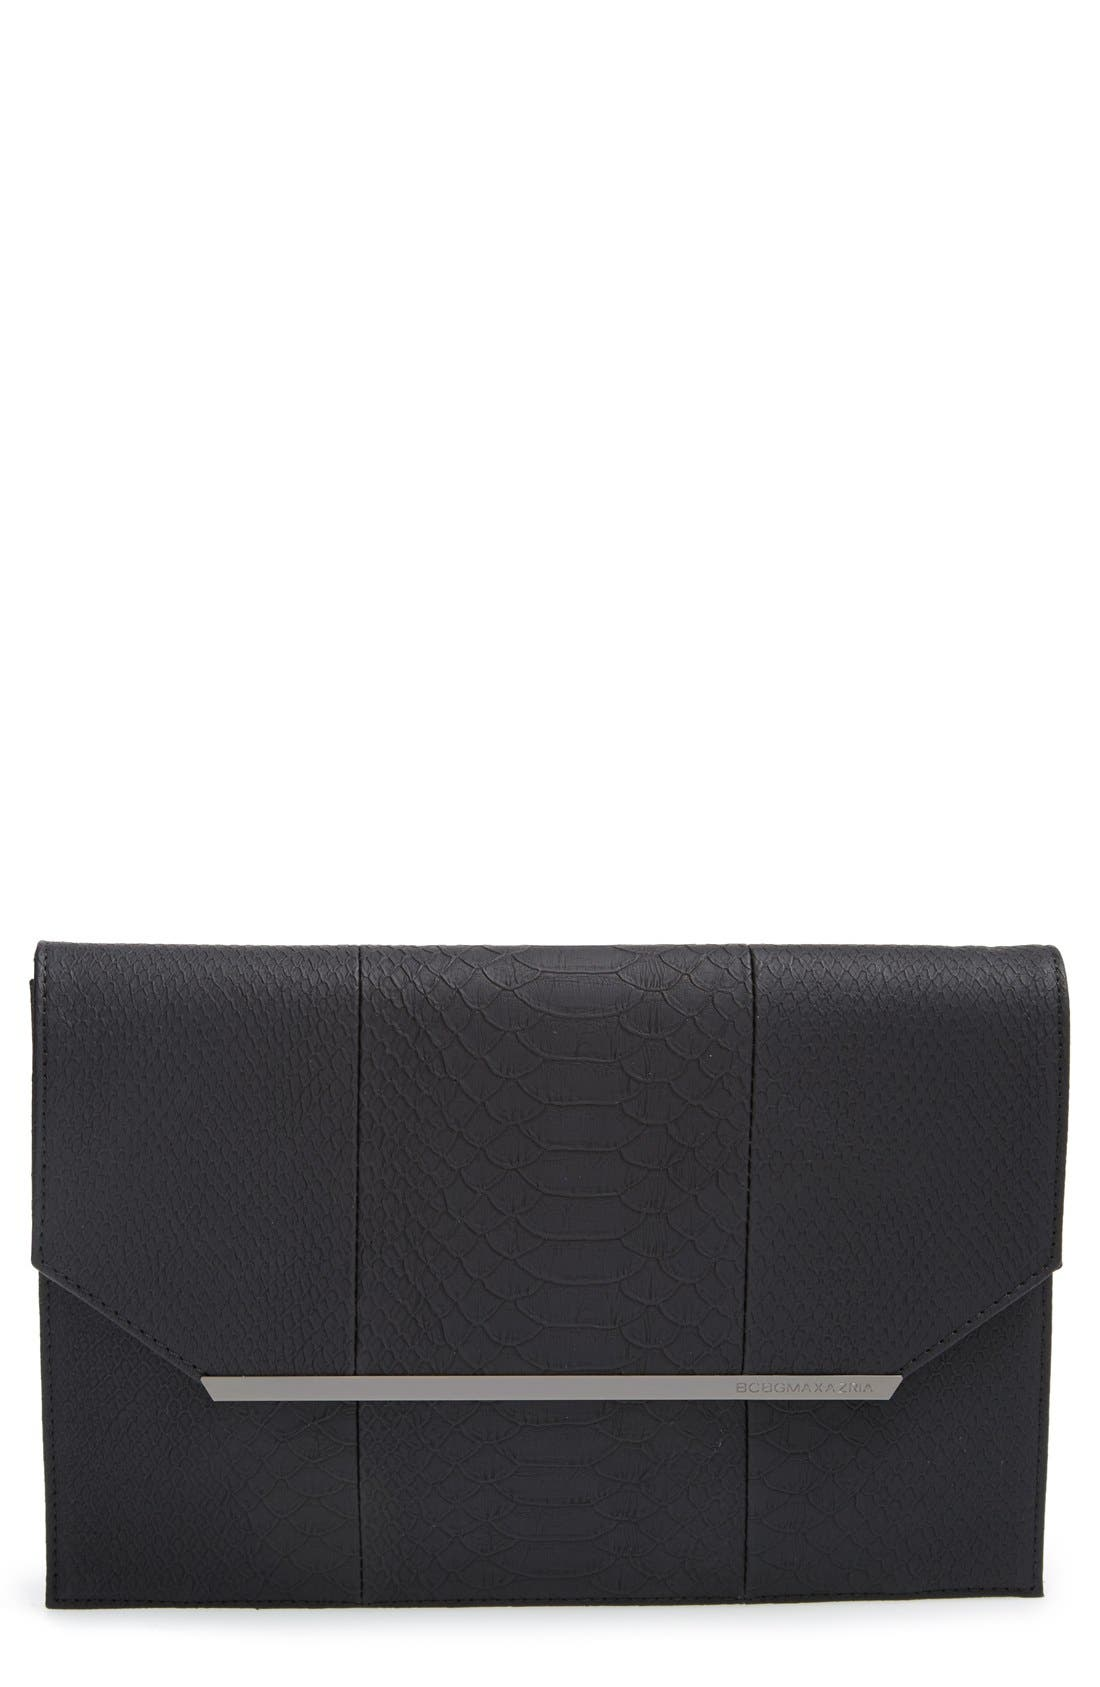 Main Image - BCBGMAXAZRIA 'Kelly' Envelope Clutch